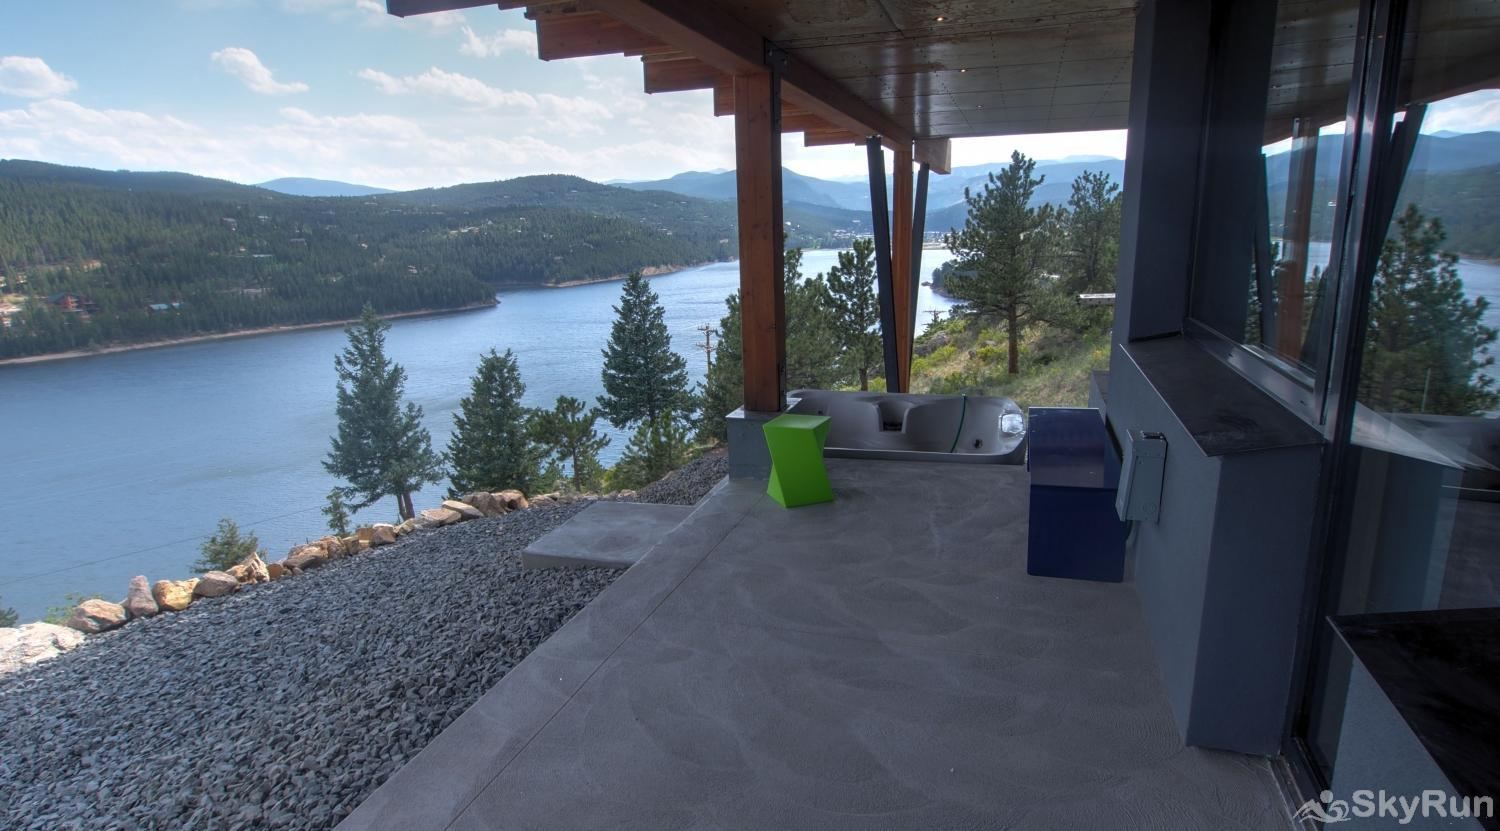 Timberline Haus view of lake below deck